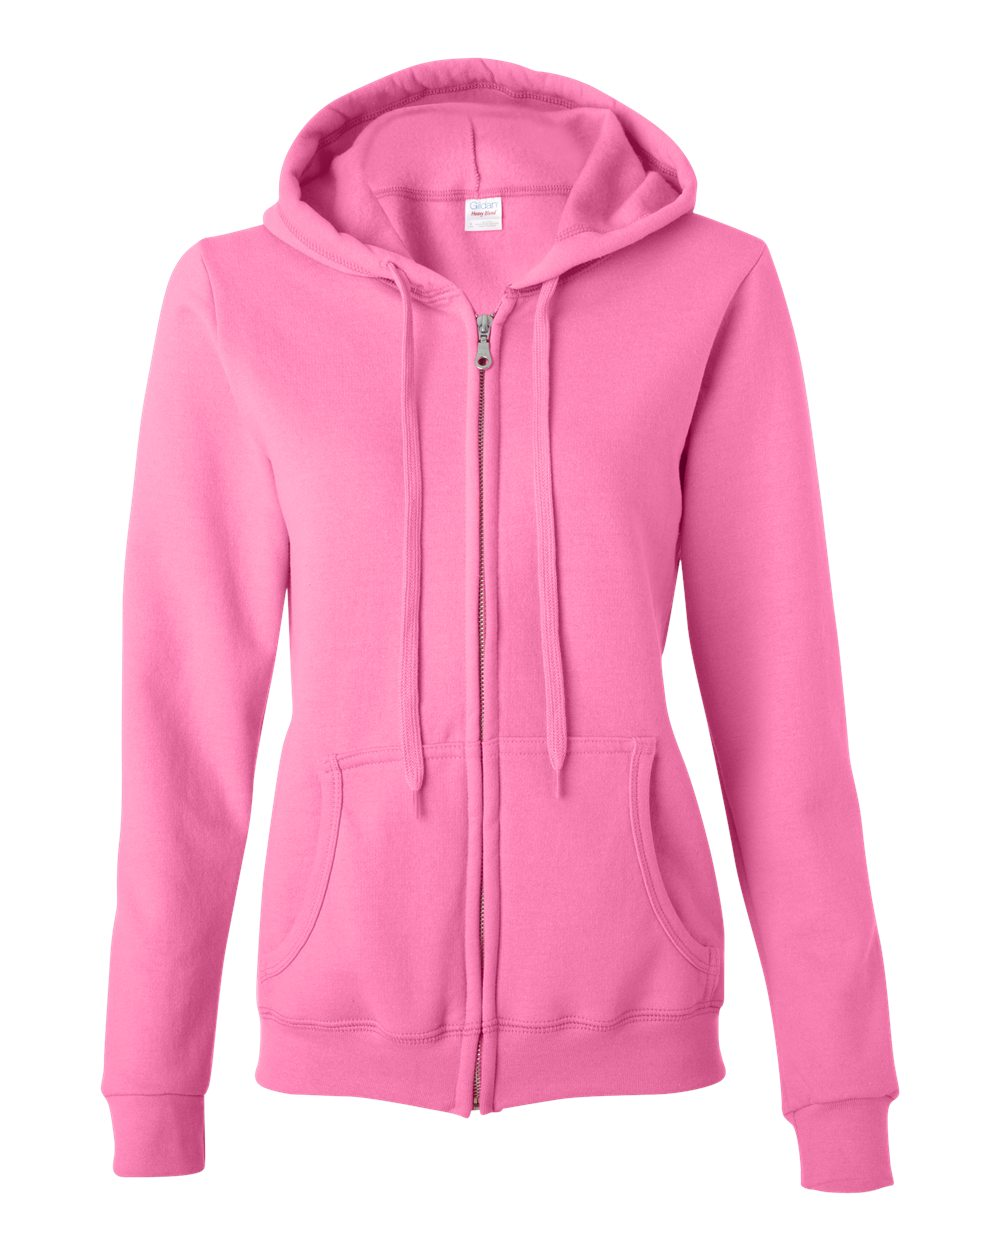 _Full-Zip Ladies' Hoodie (Pink Only): You Choose Design